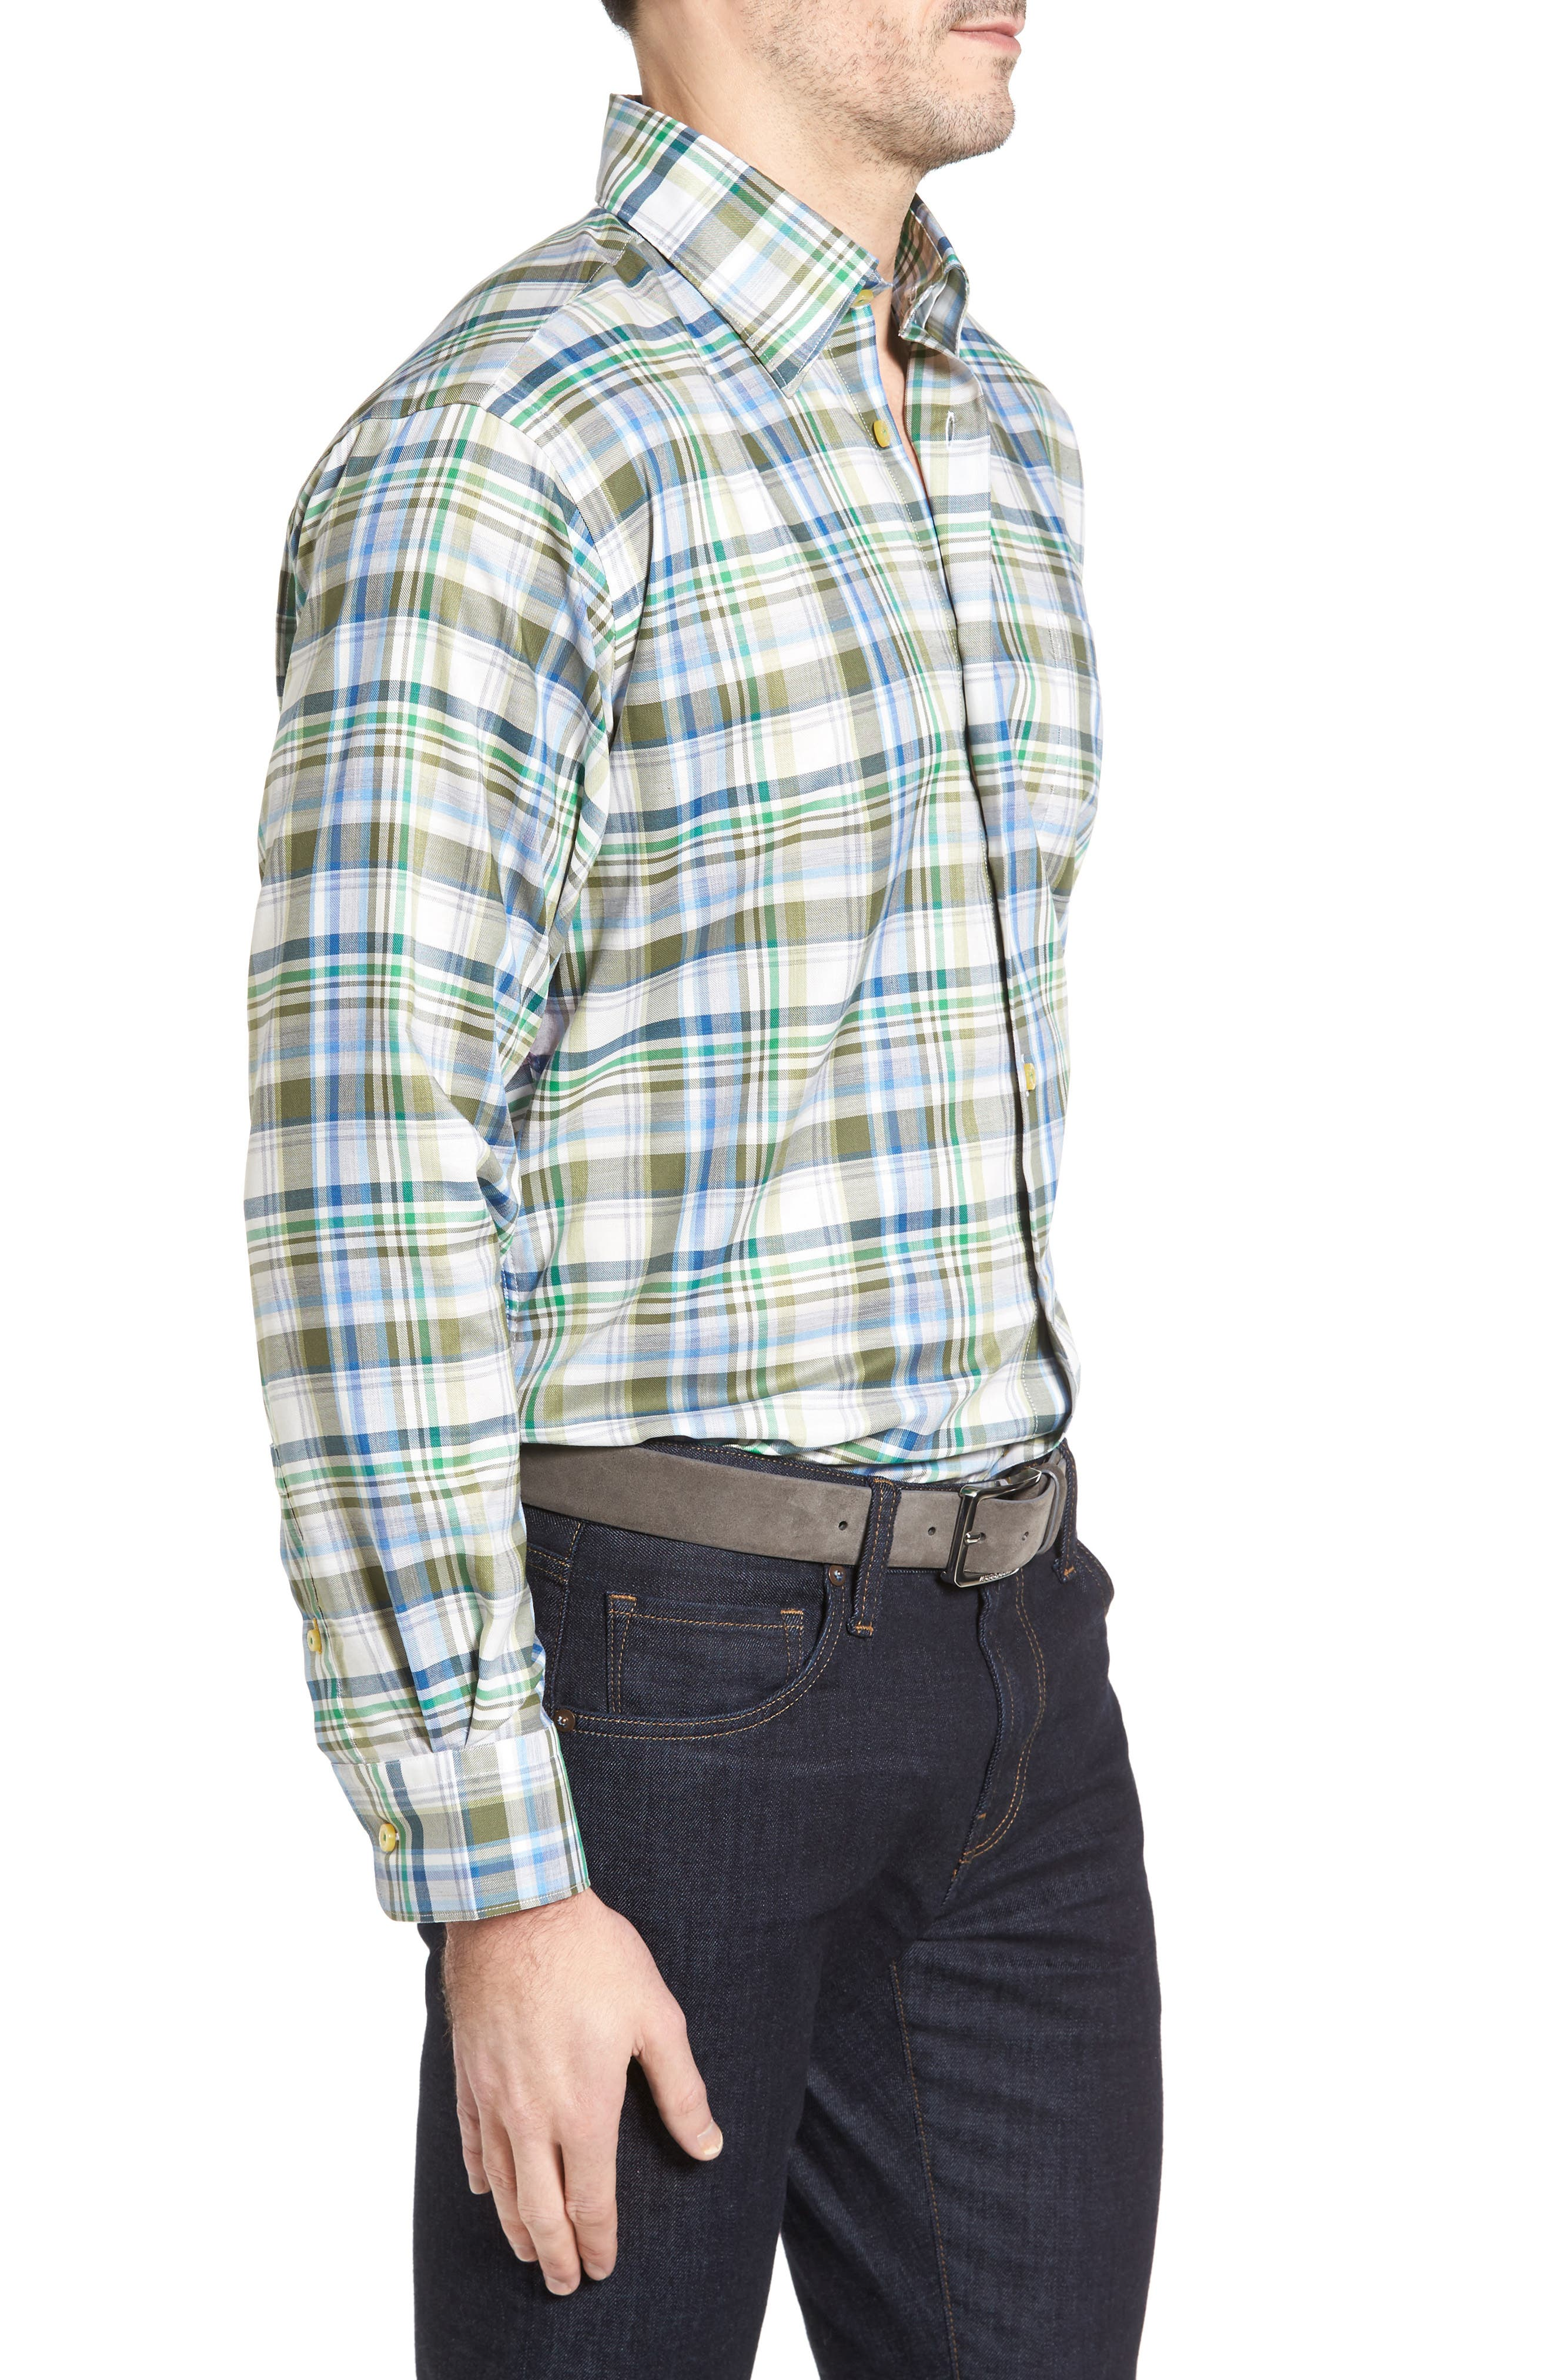 Anderson Classic Fit Plaid Micro Twill Sport Shirt,                             Alternate thumbnail 3, color,                             300